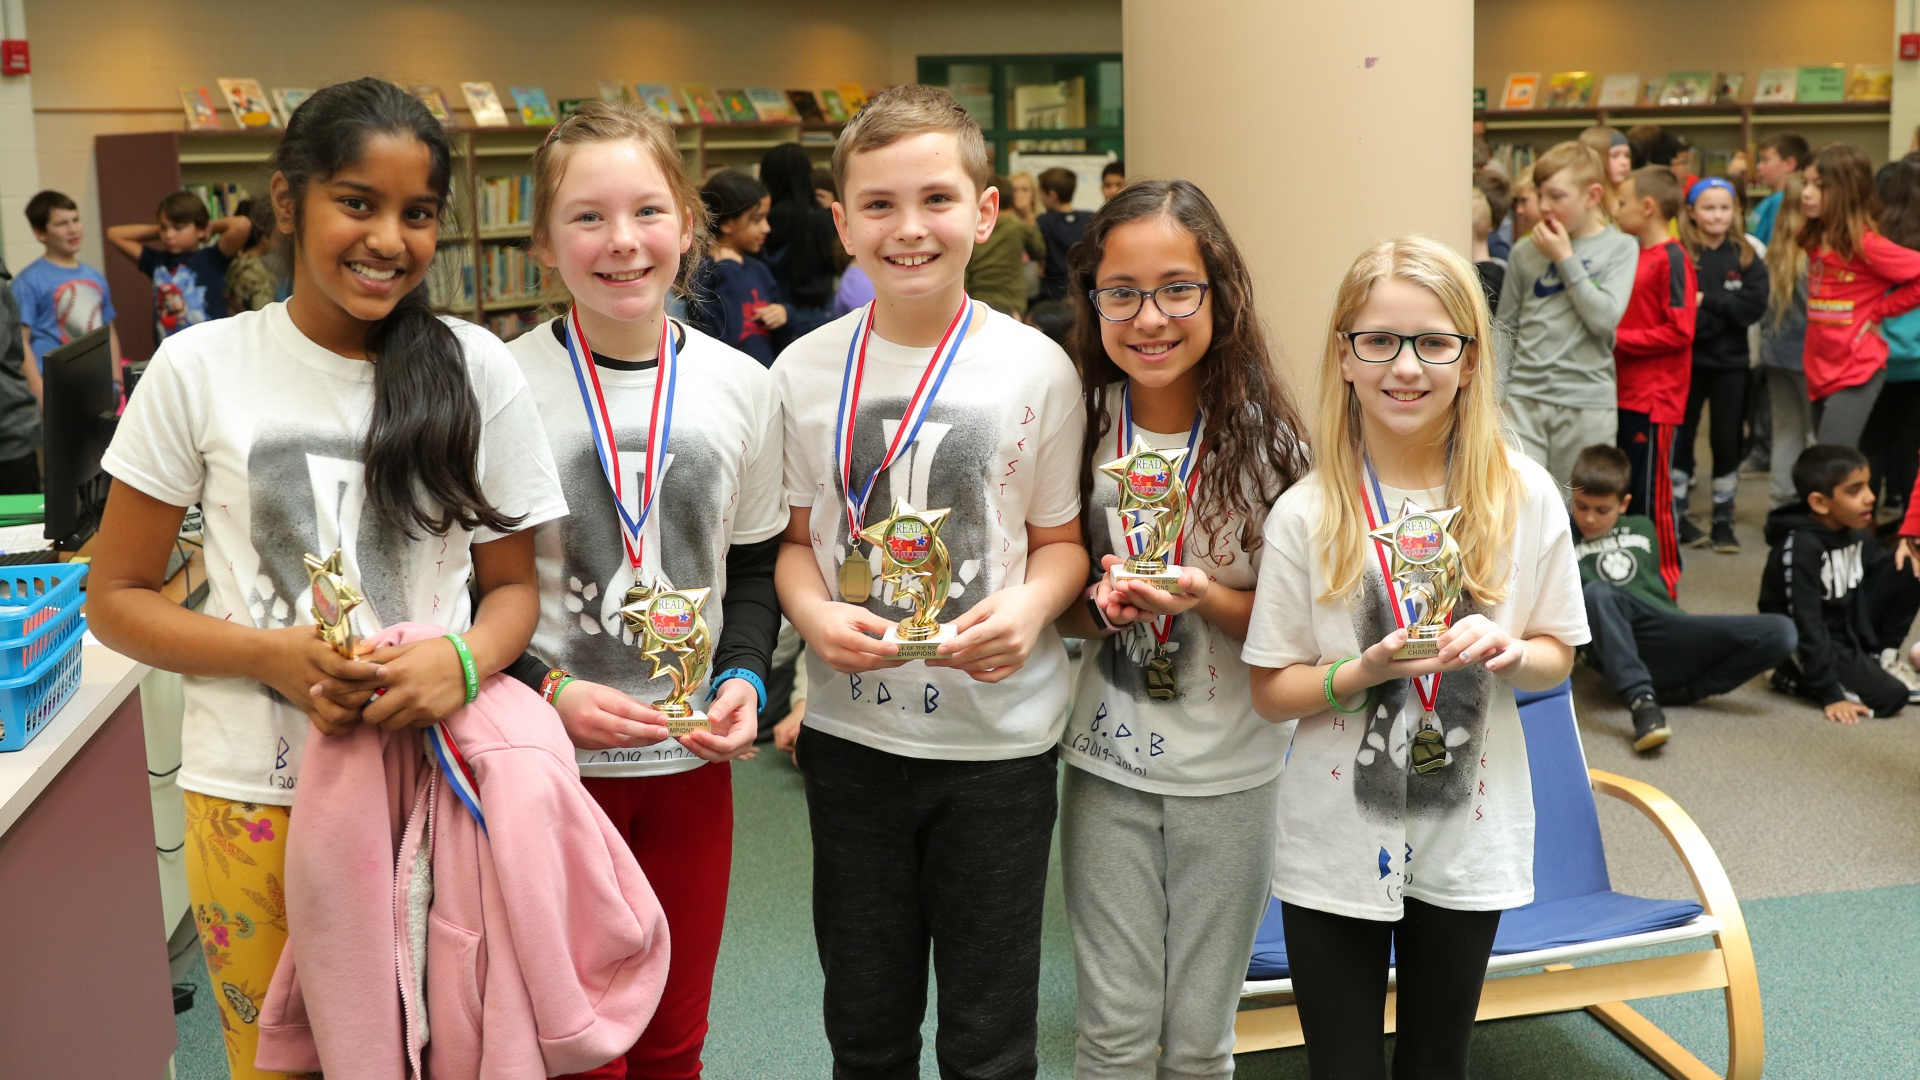 slidshow image - Battle of the books....Winners -